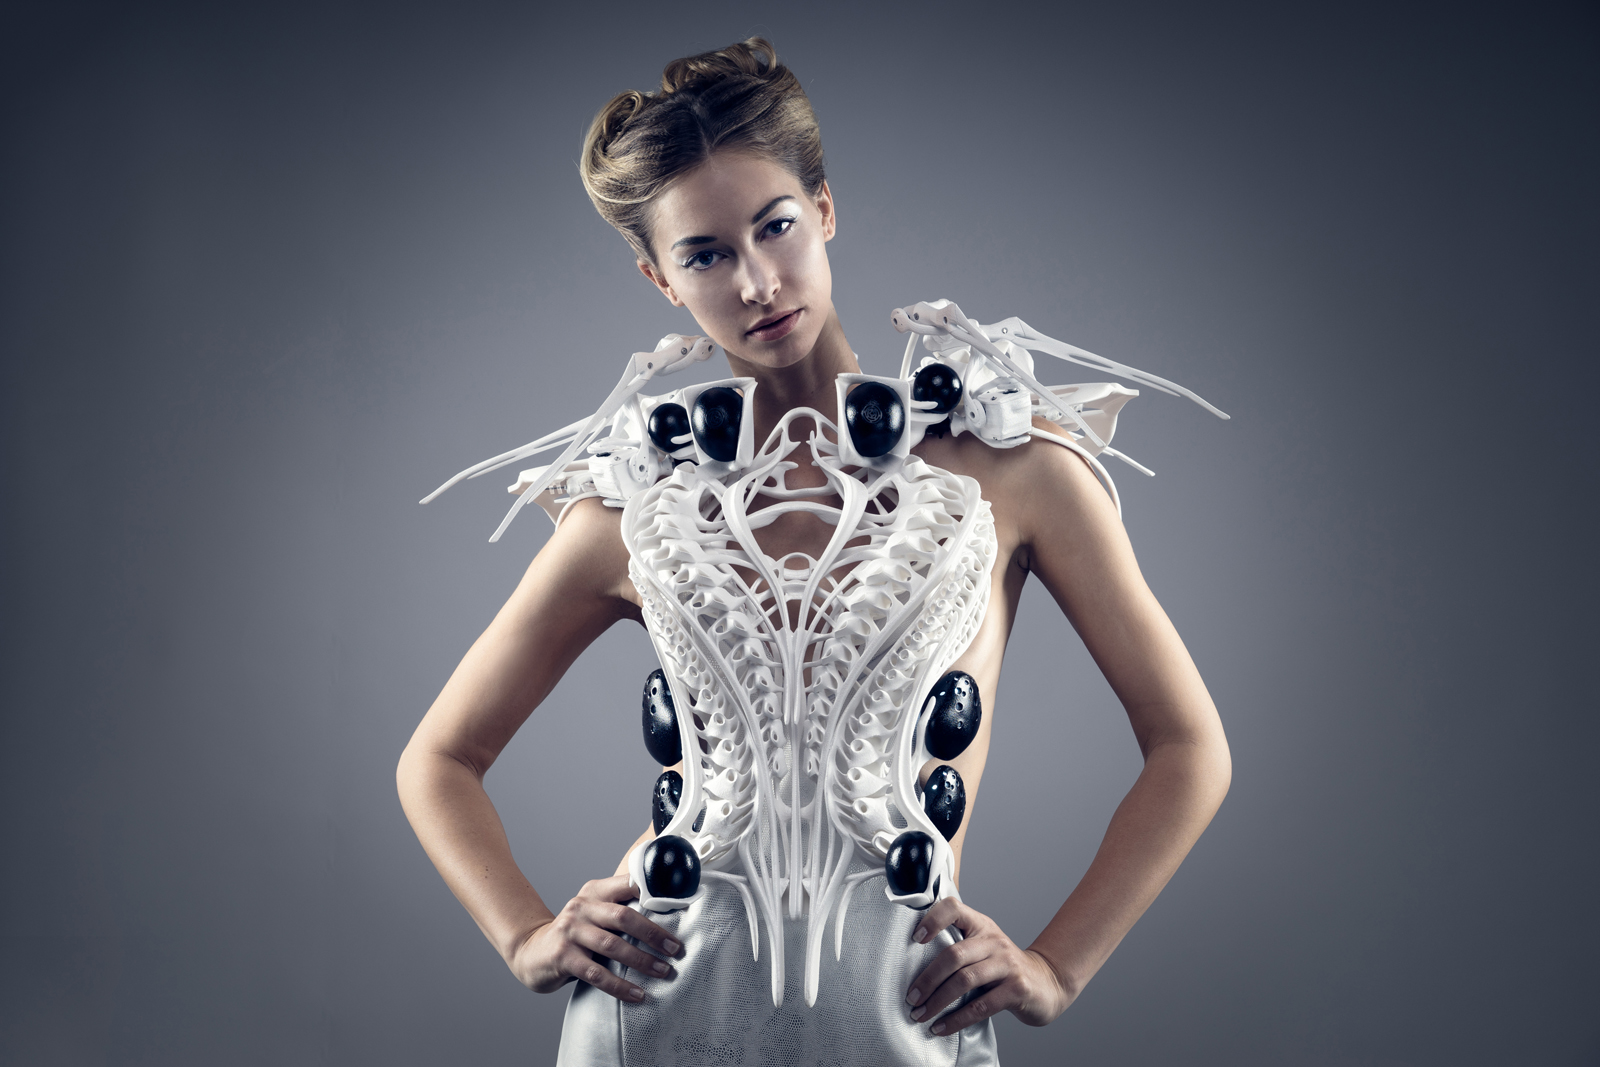 robotic spider dress2